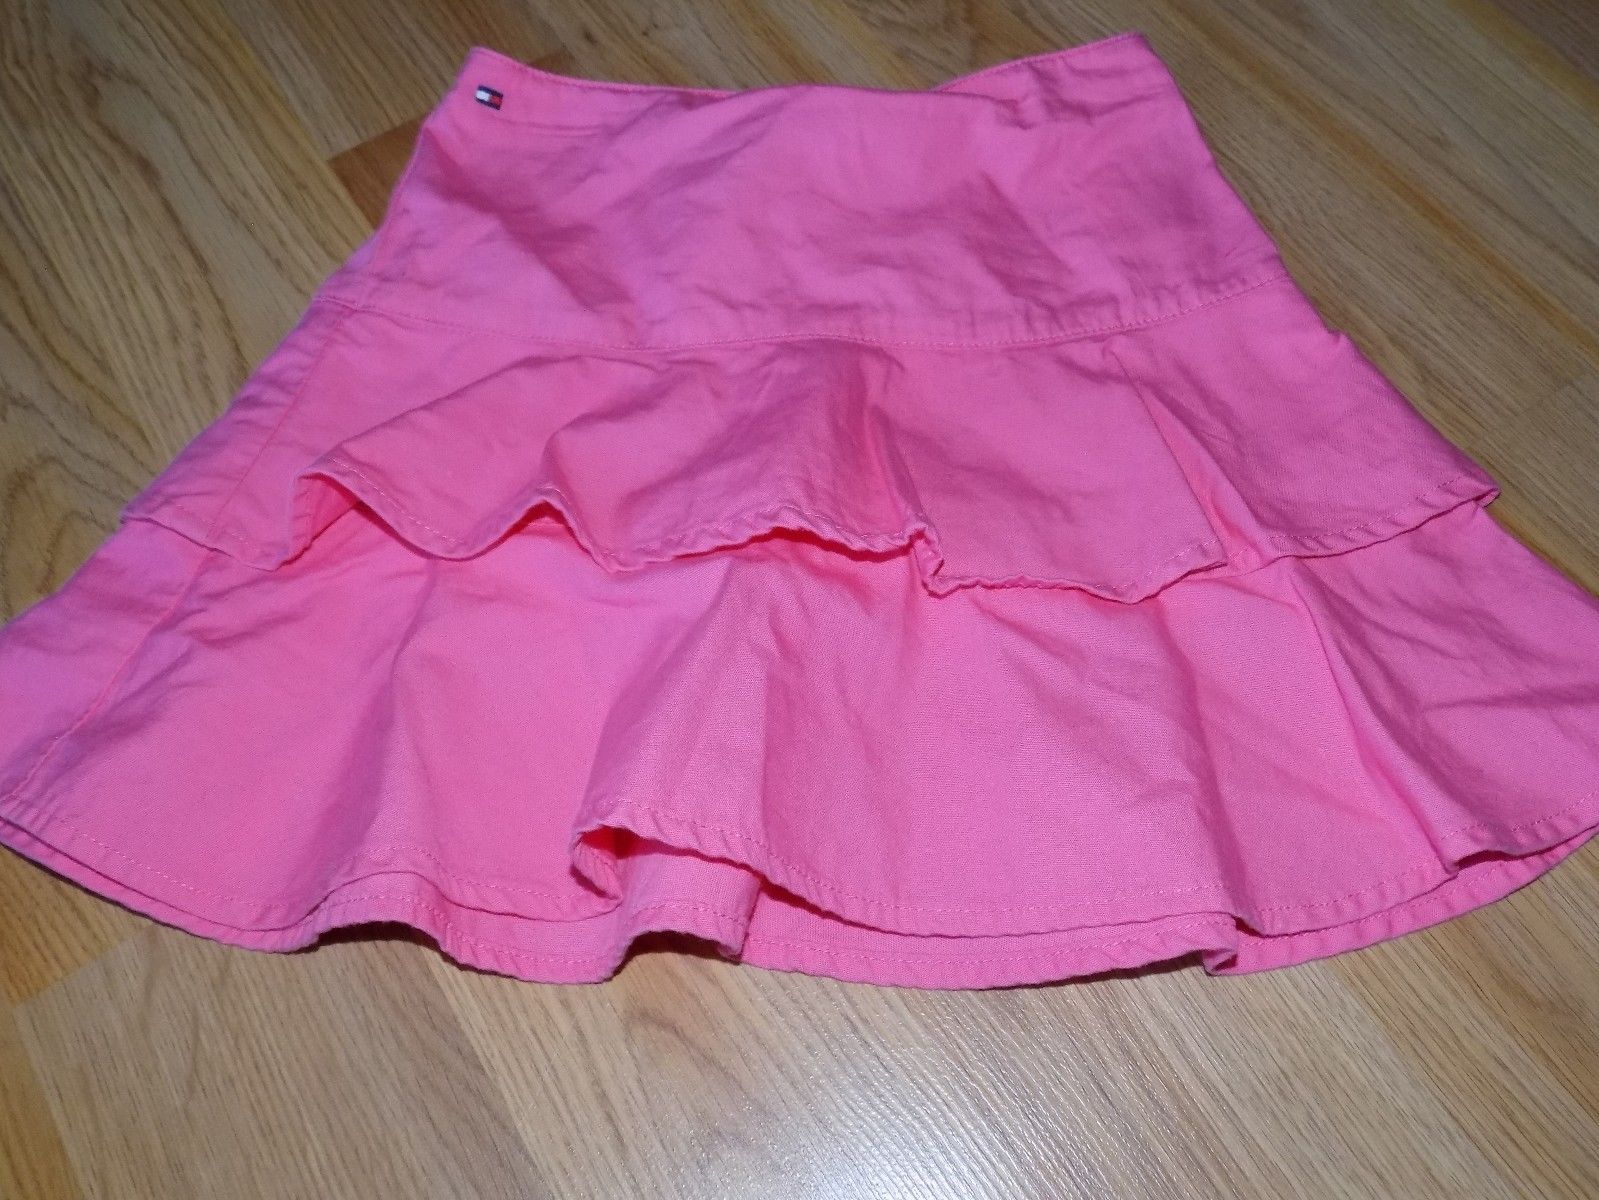 Toddler Size 3t 36 Months Gymboree Tip Toe Tulip Pink Pleated Skirt New Nwt Latest Fashion Baby & Toddler Clothing